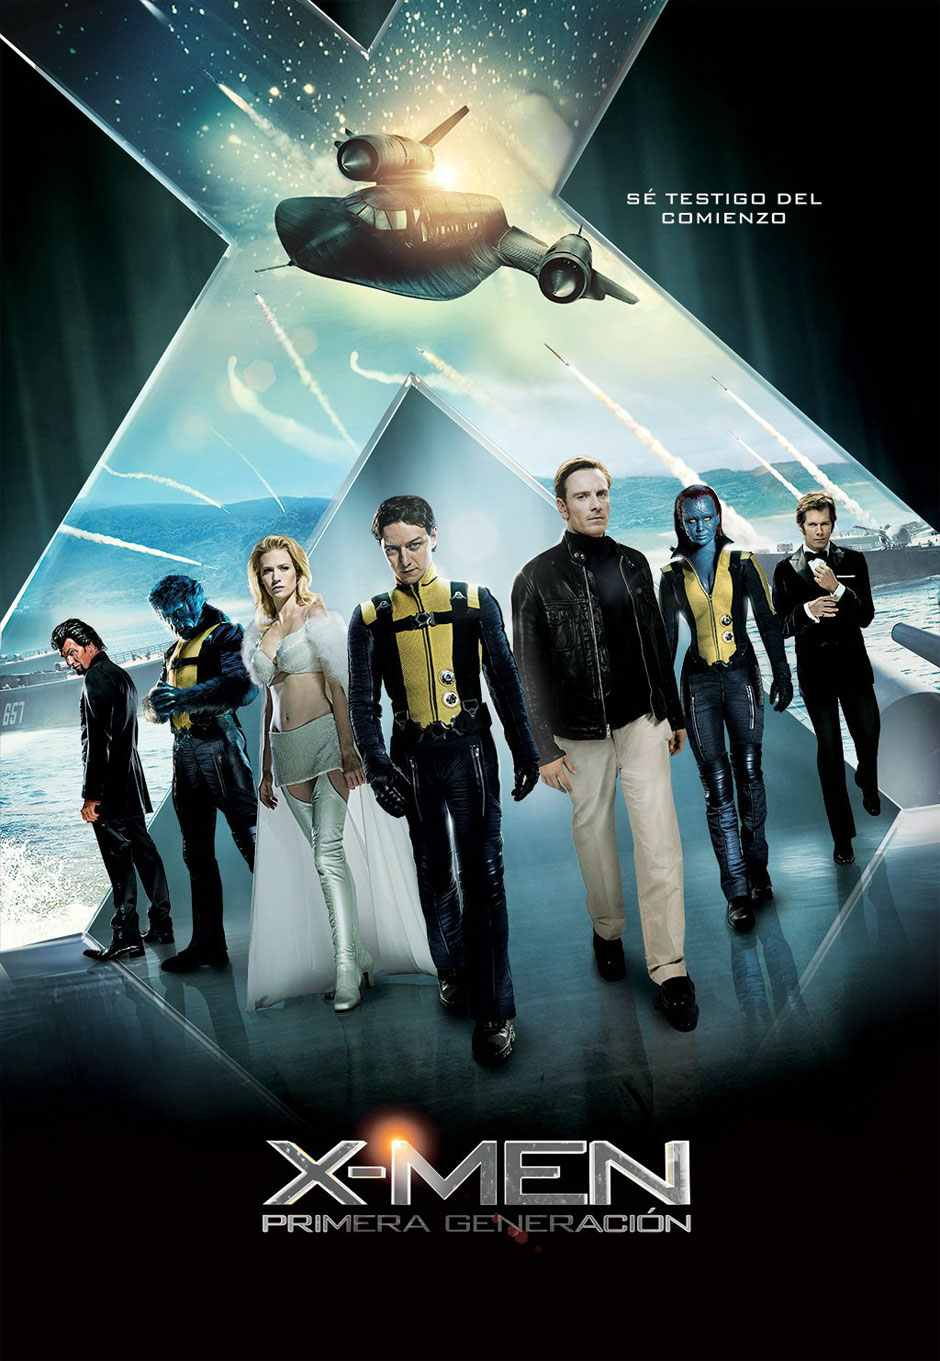 movies on demand x men first class 2011. Black Bedroom Furniture Sets. Home Design Ideas